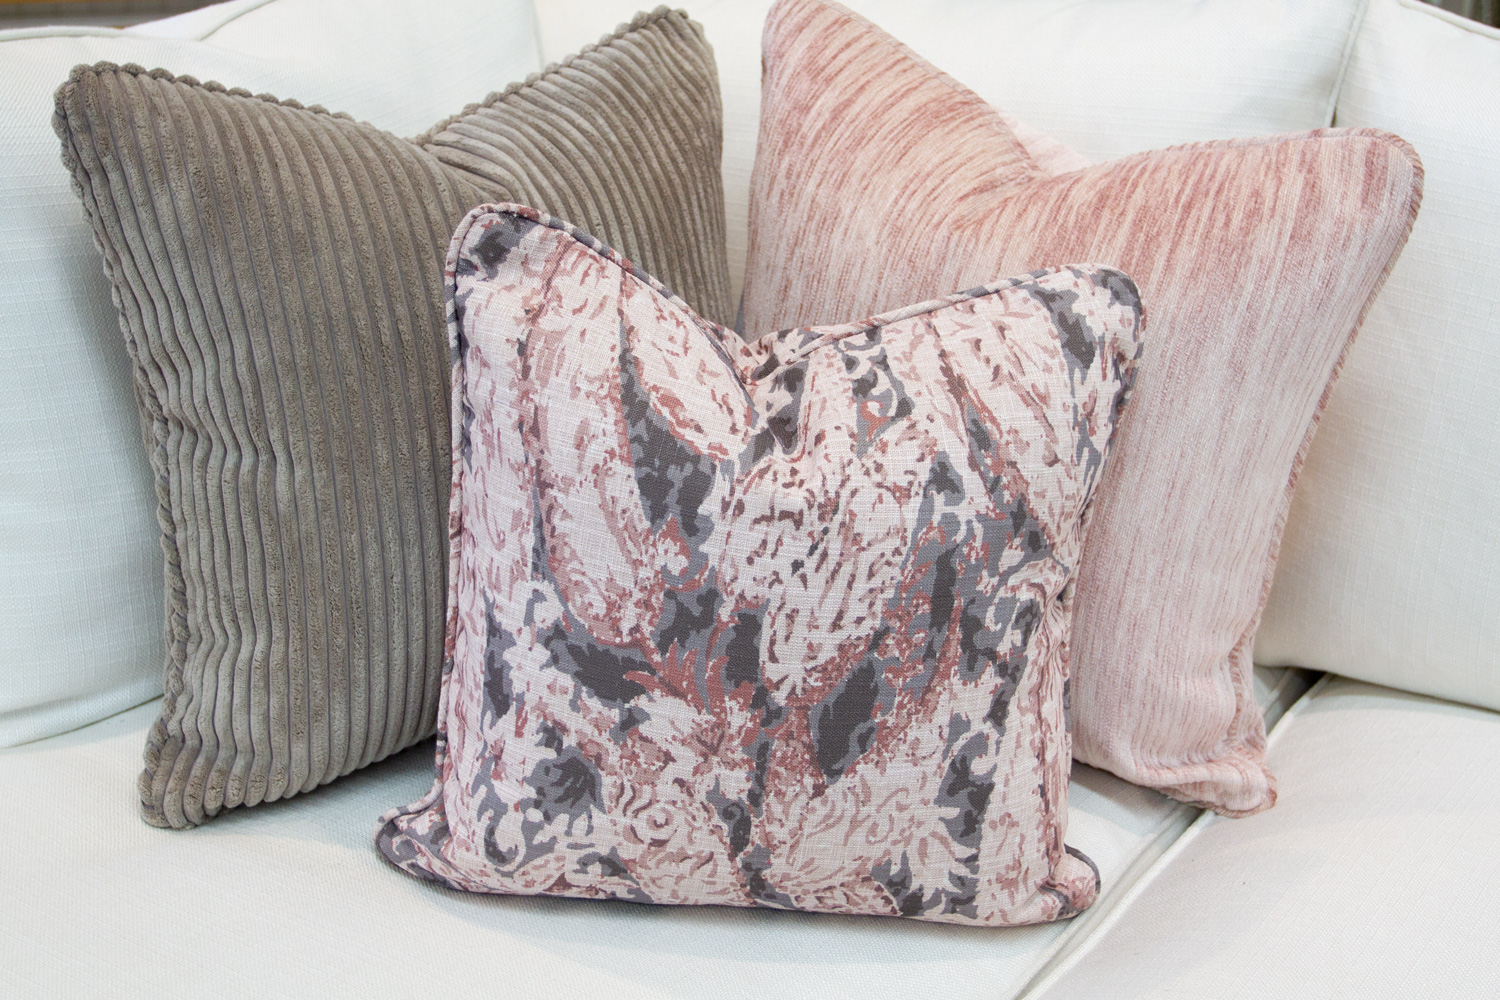 Chameleon Style 12 Days Of Pillows 2018 Blush Day 6 Chameleon Style